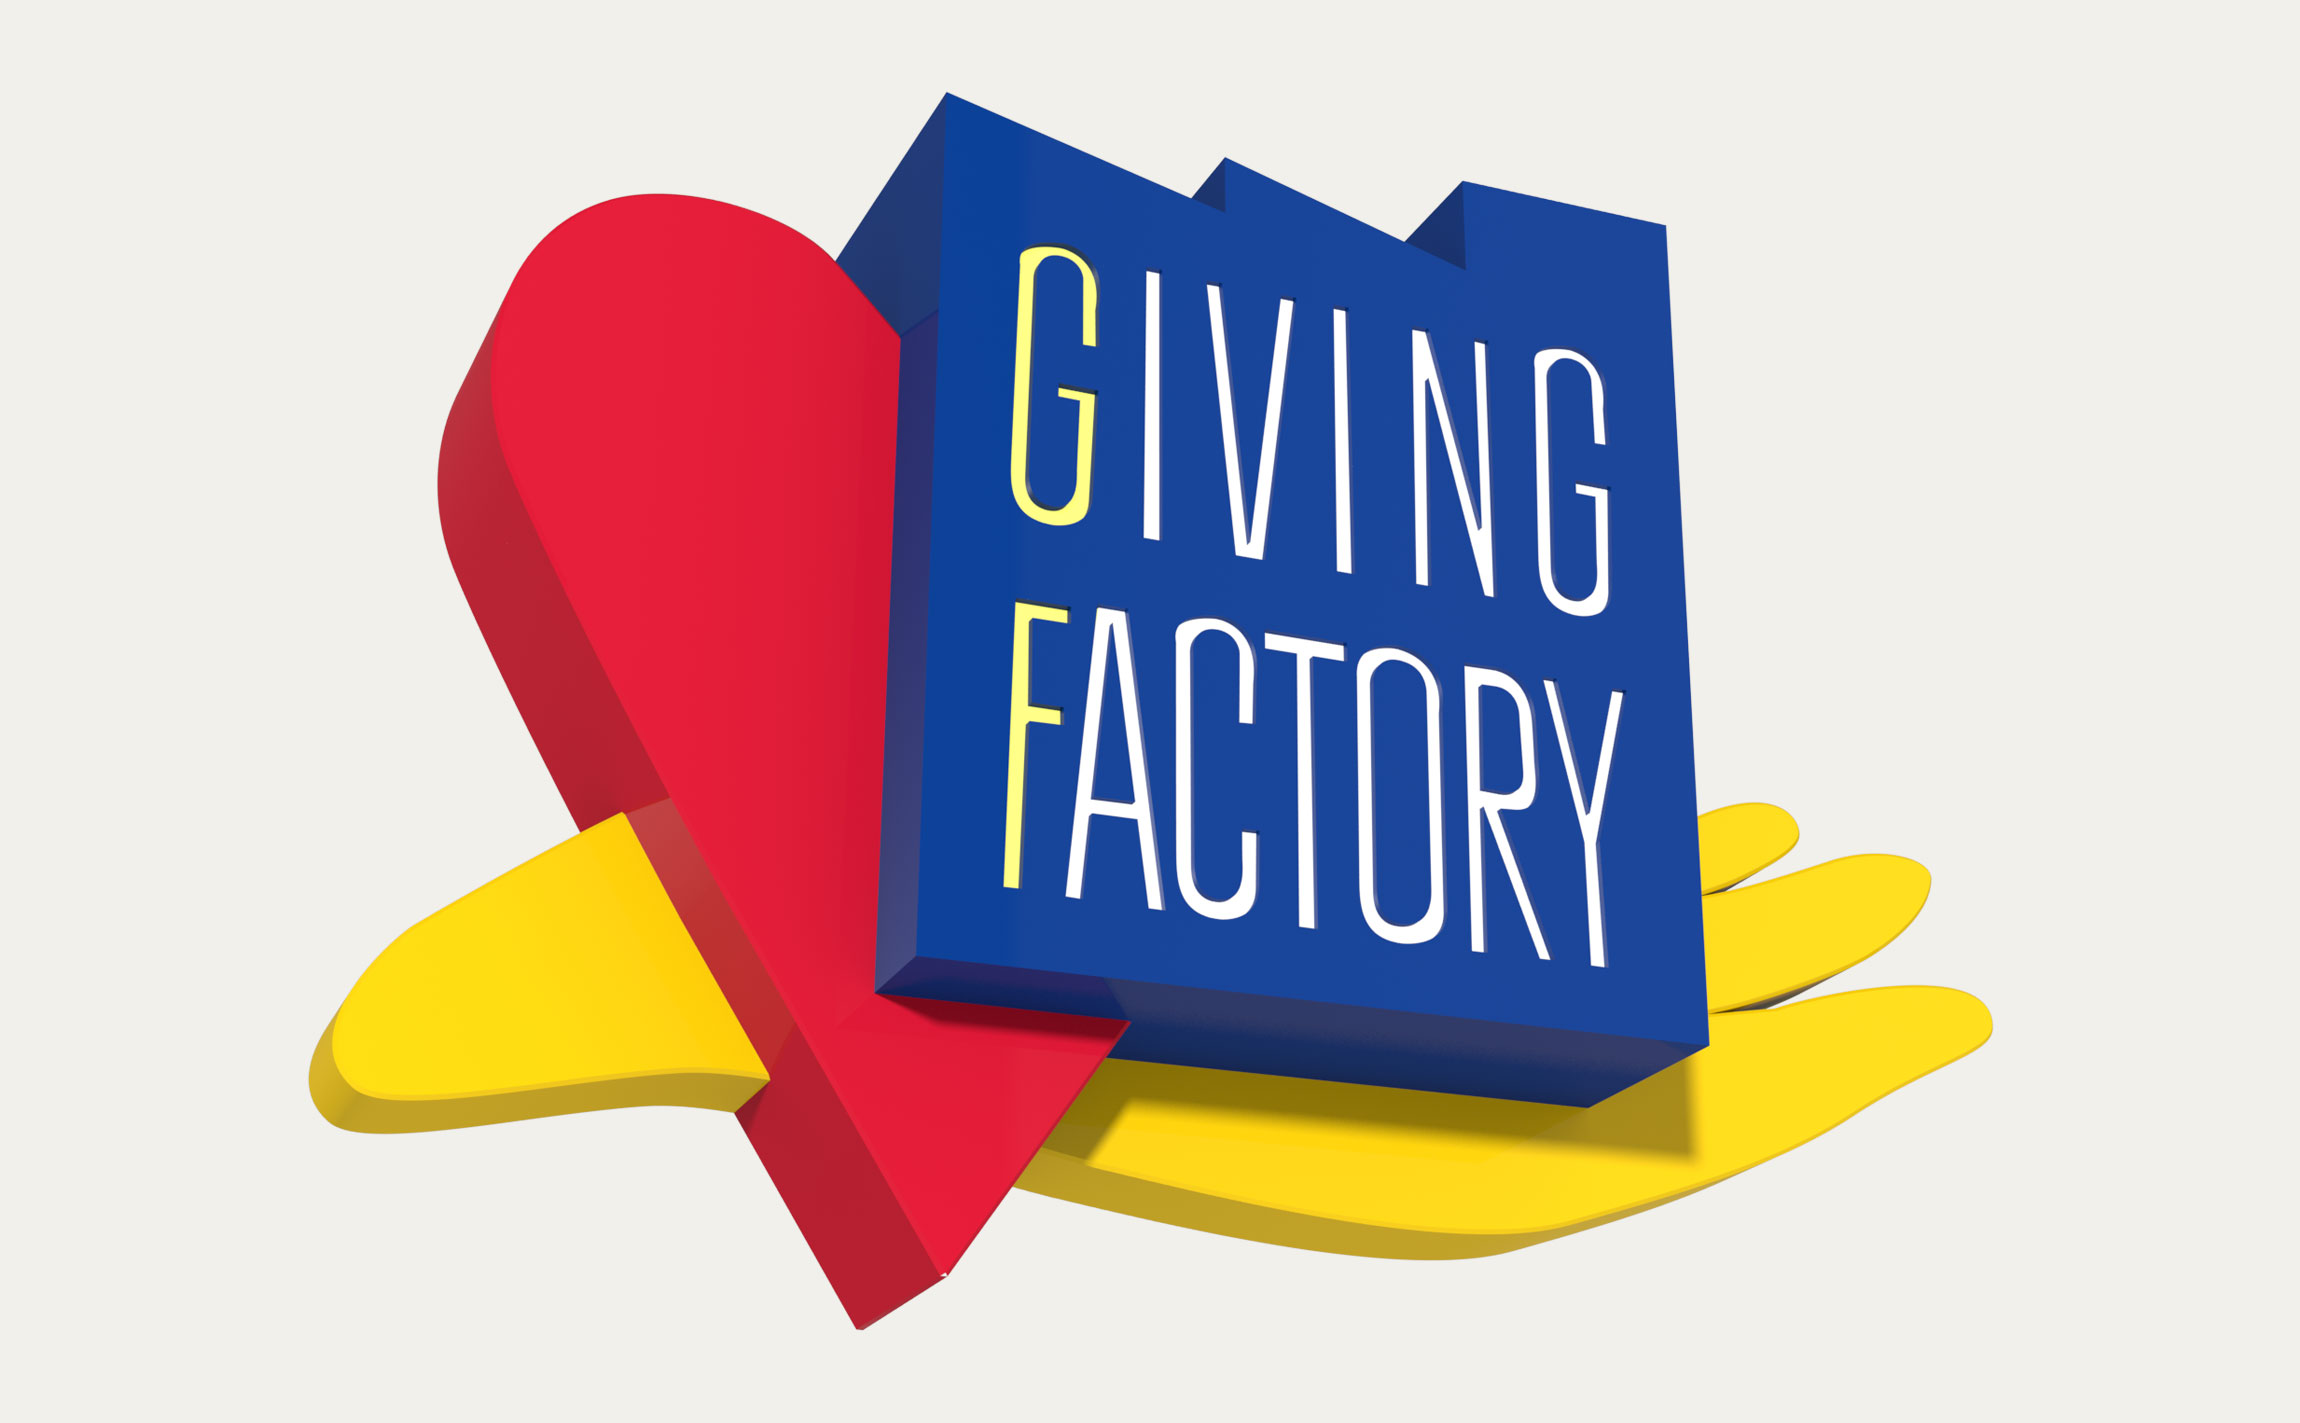 Giving Factory Miral Welfare Foundation Graphic